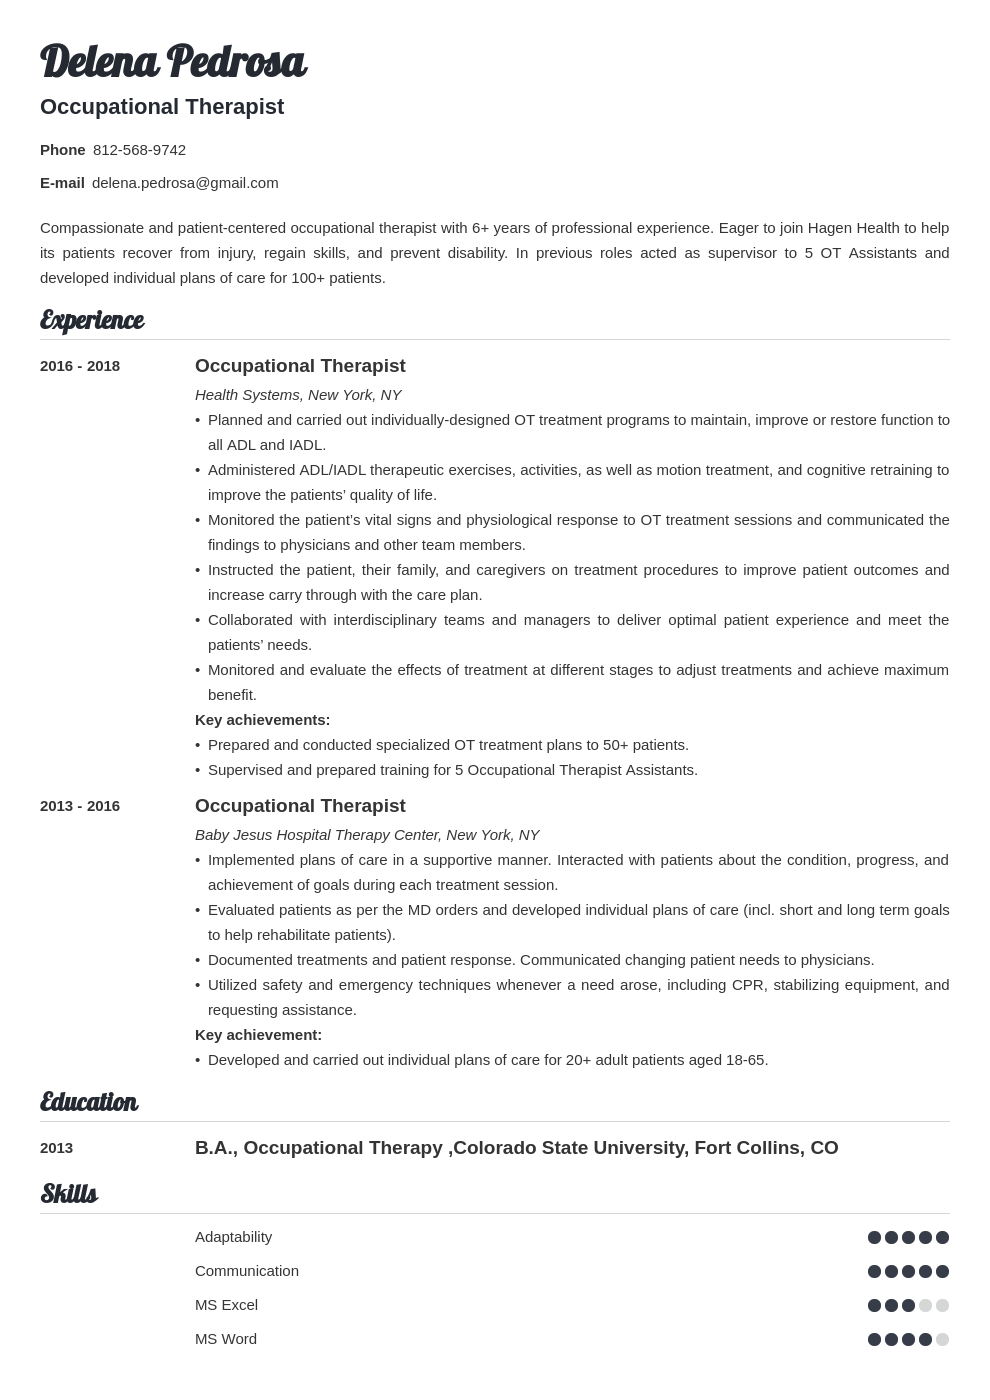 Cover Letter For Occupational Therapist Job from cdn-images.zety.com